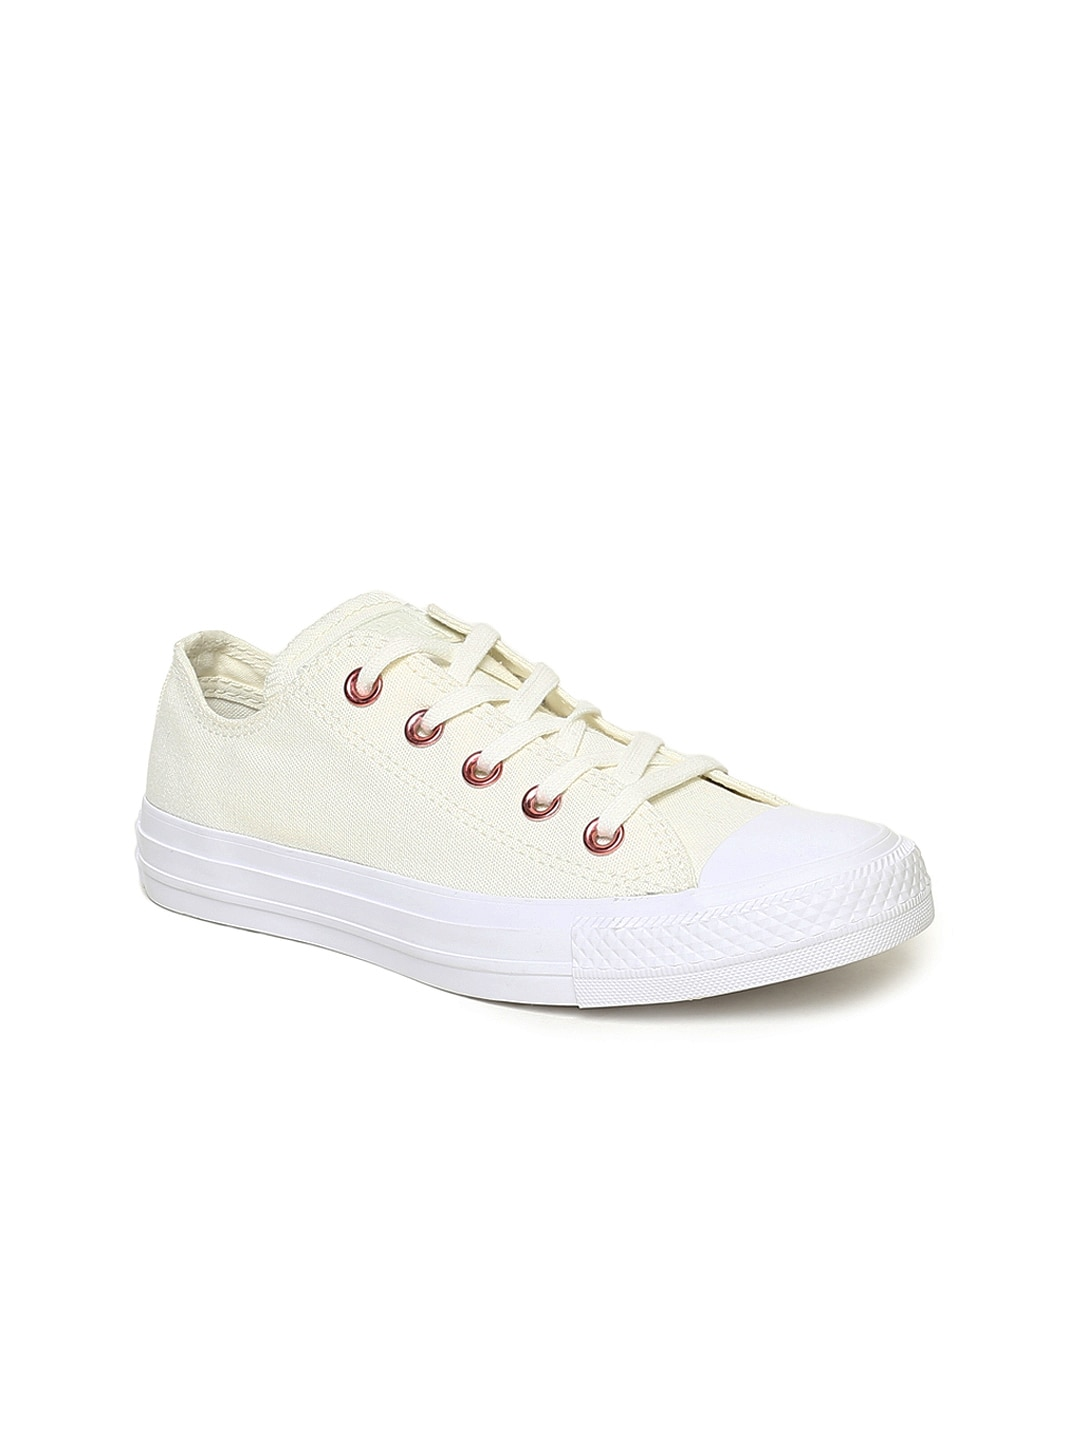 0ecb93e9a819f7 Converse Shoes - Buy Converse Canvas Shoes   Sneakers Online